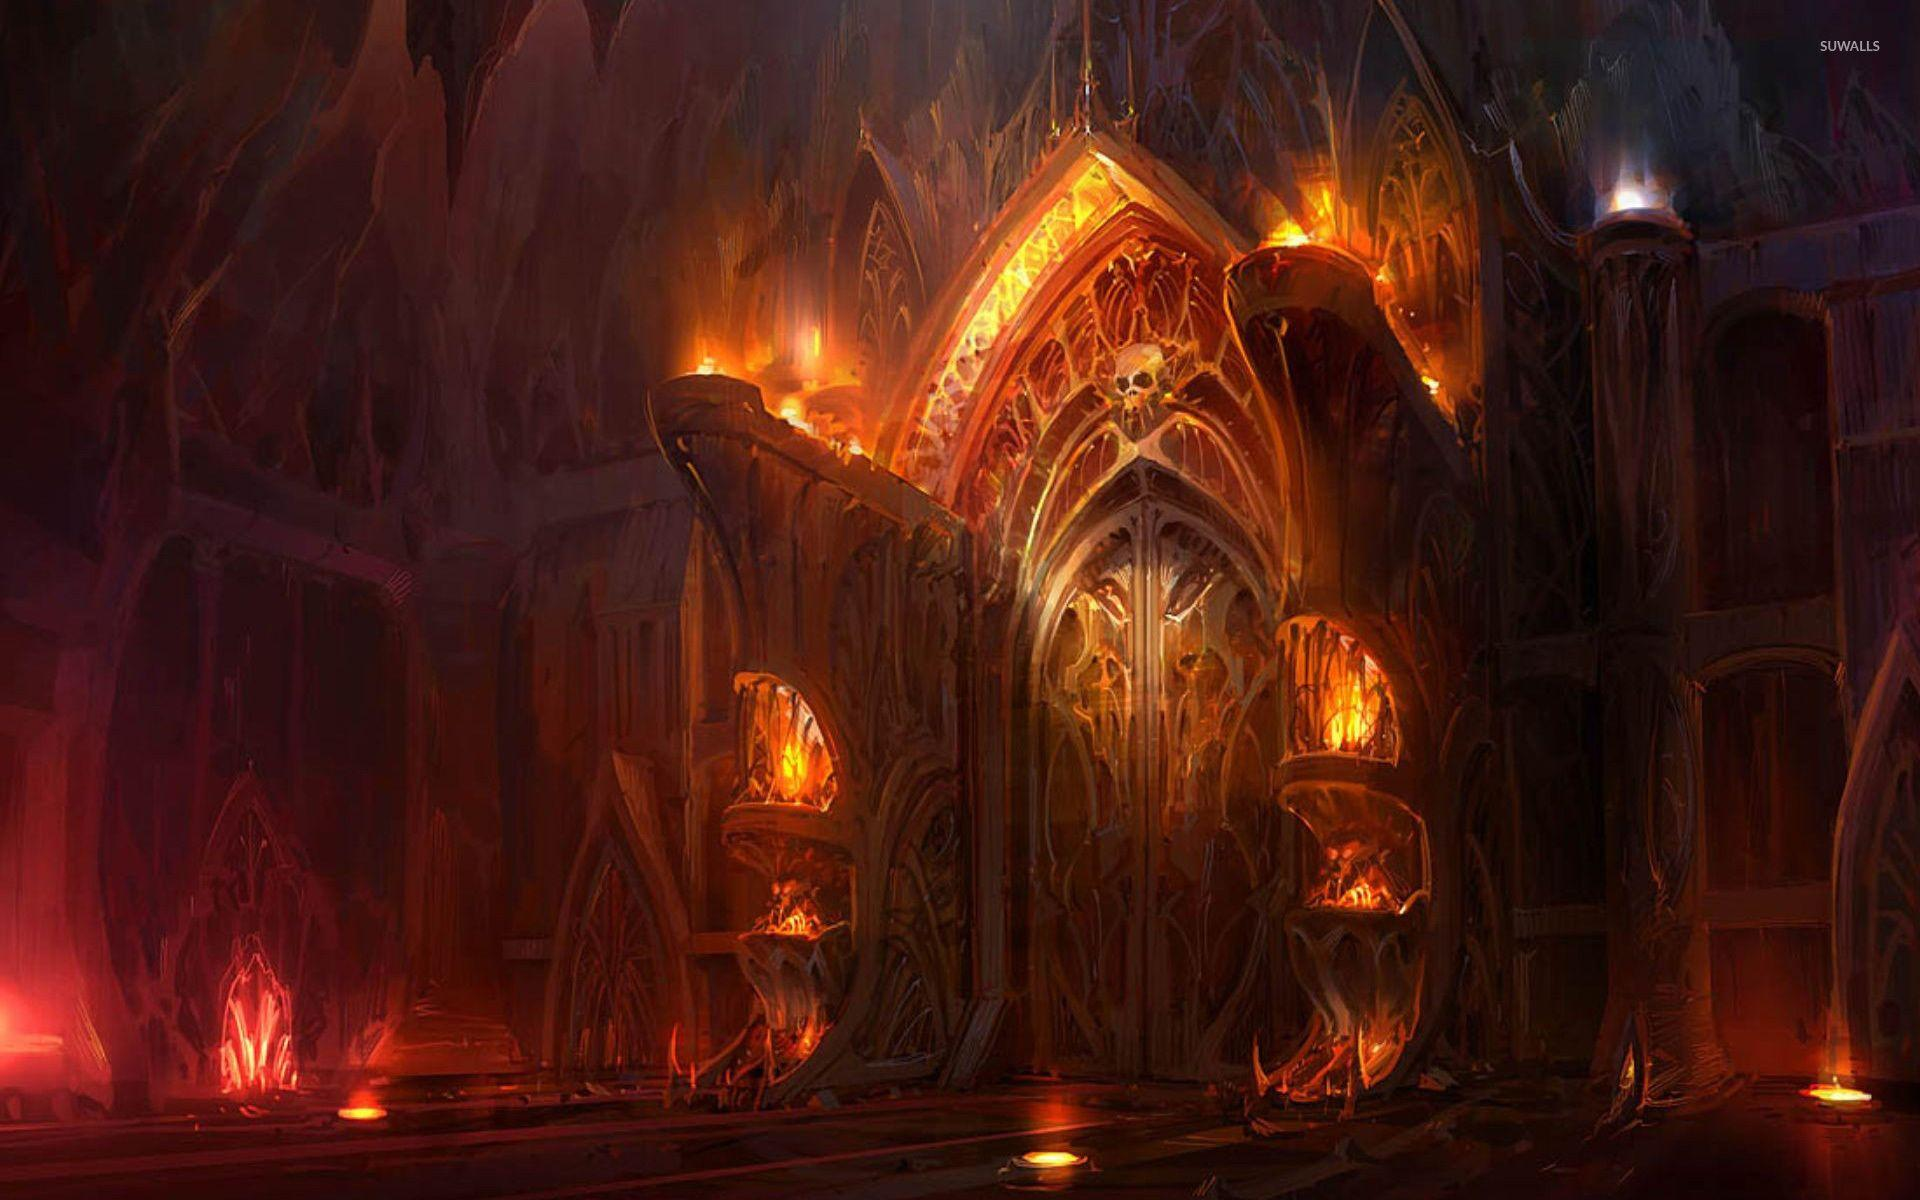 Hd Wallpapers The Gates Of Hell Wallpaper Cave